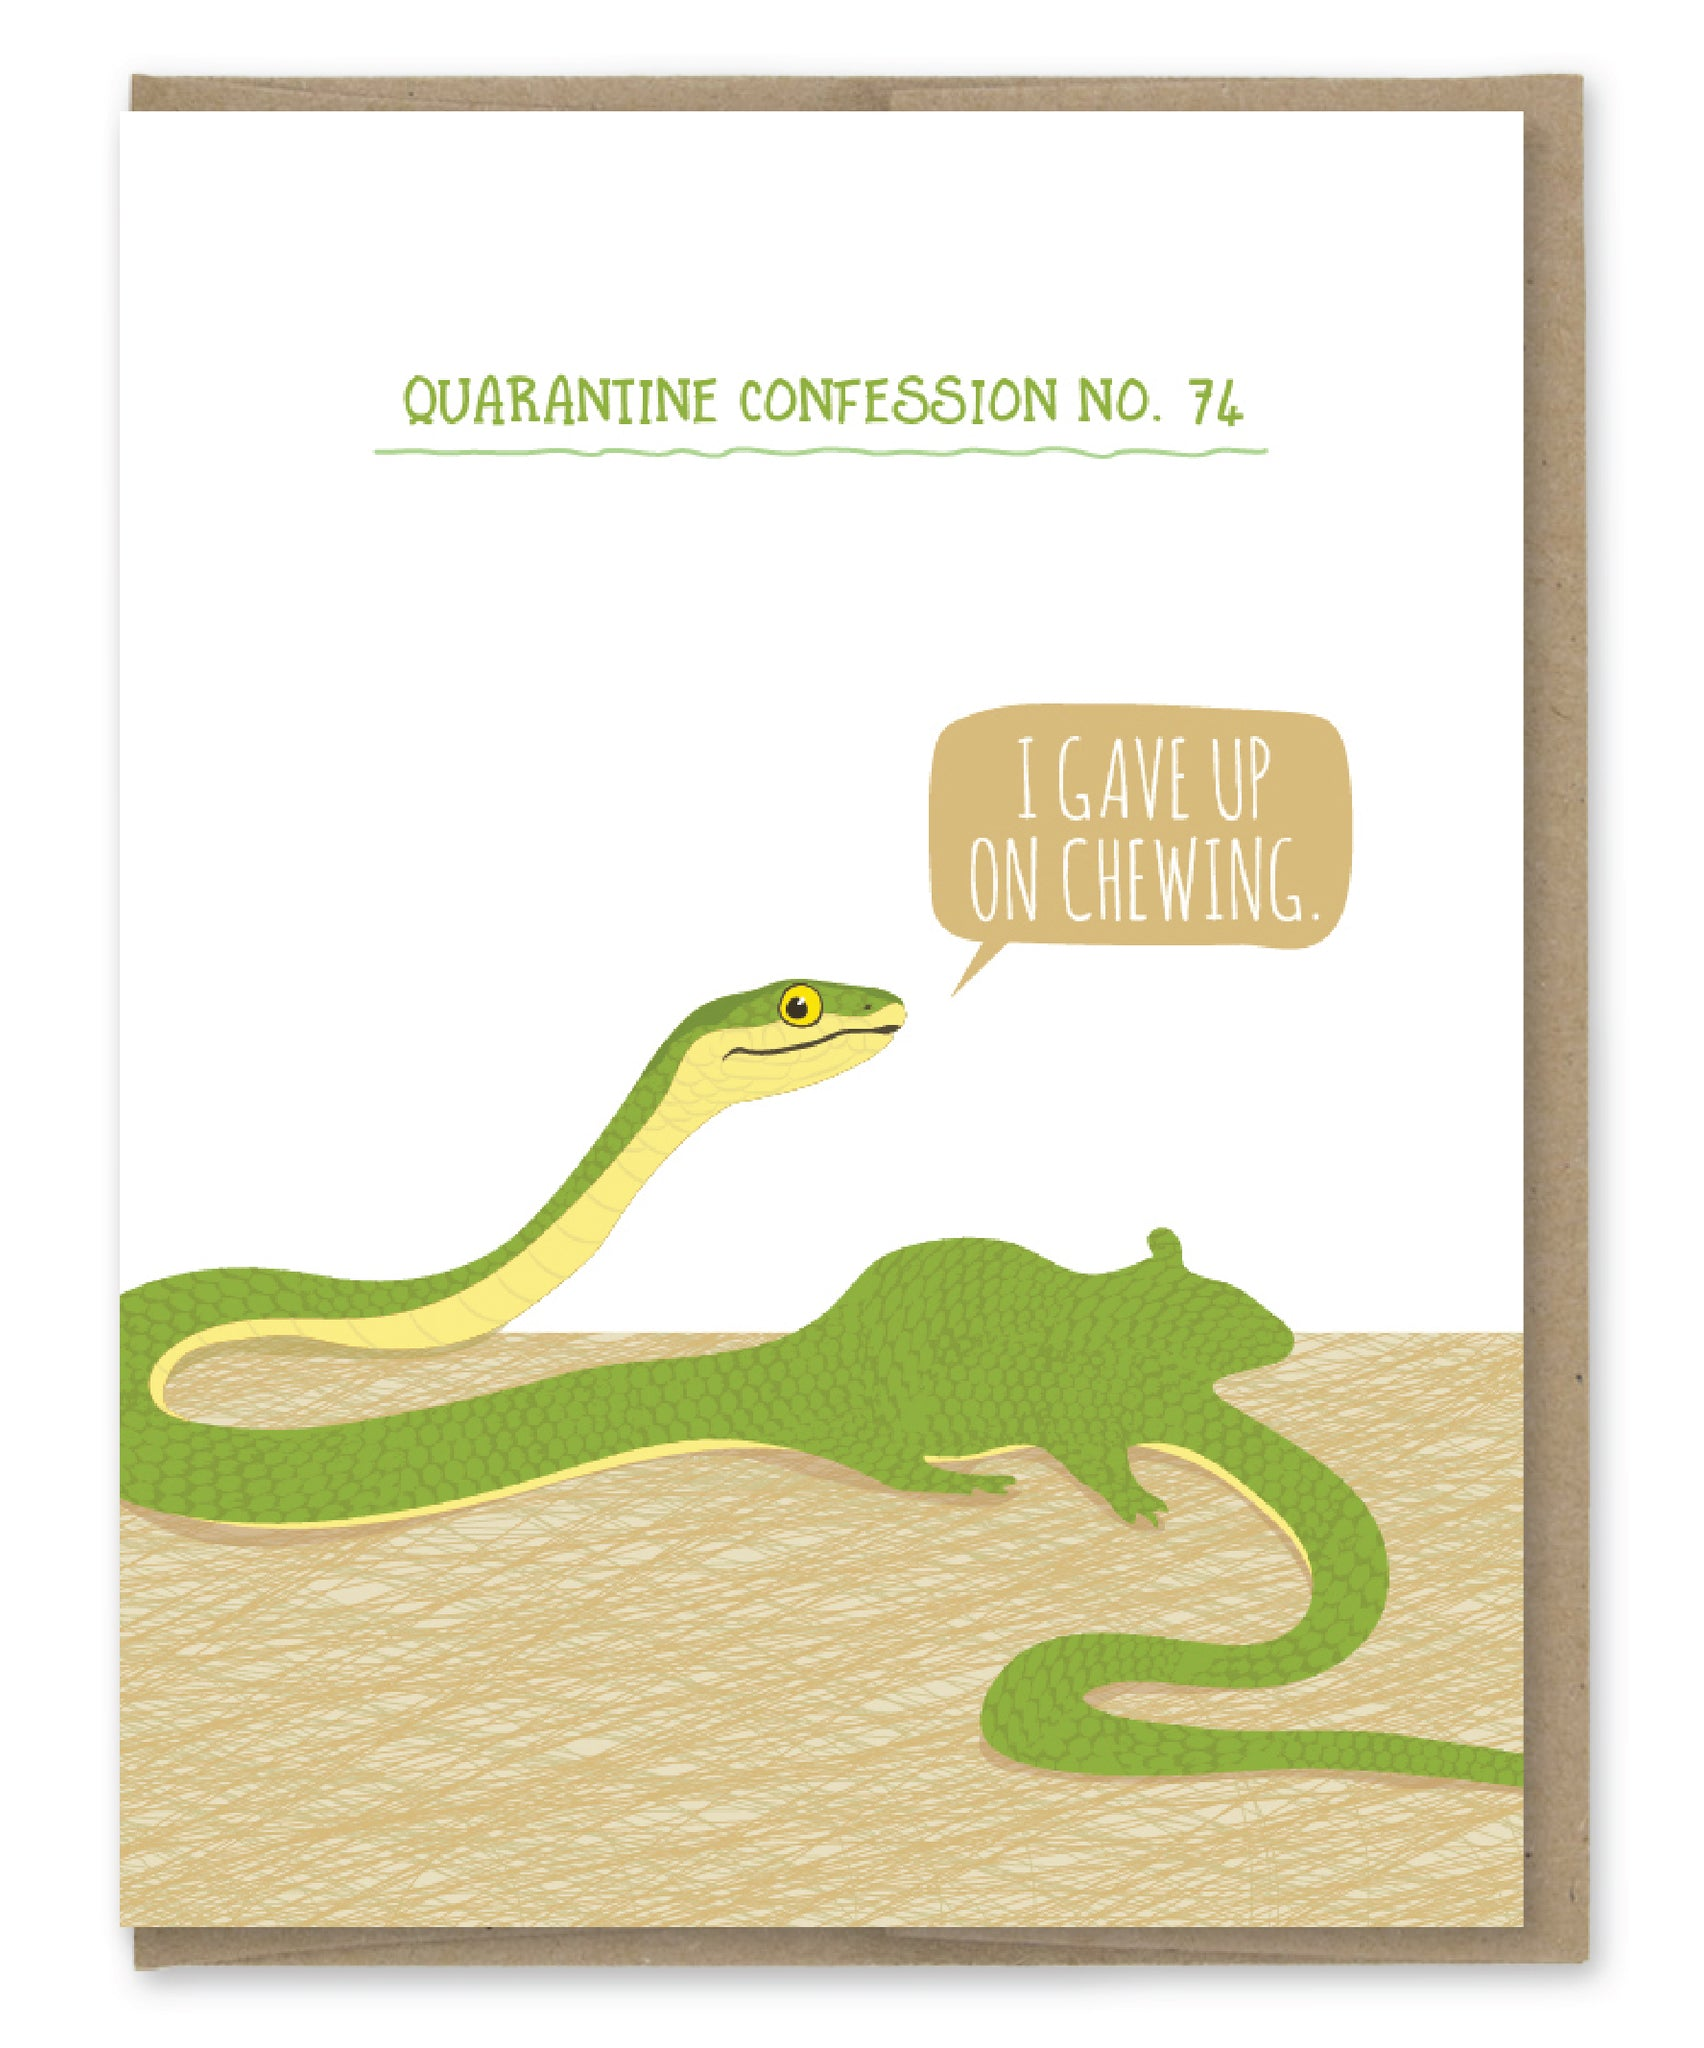 SNAKE QUARANTINE CONFESSION CARD